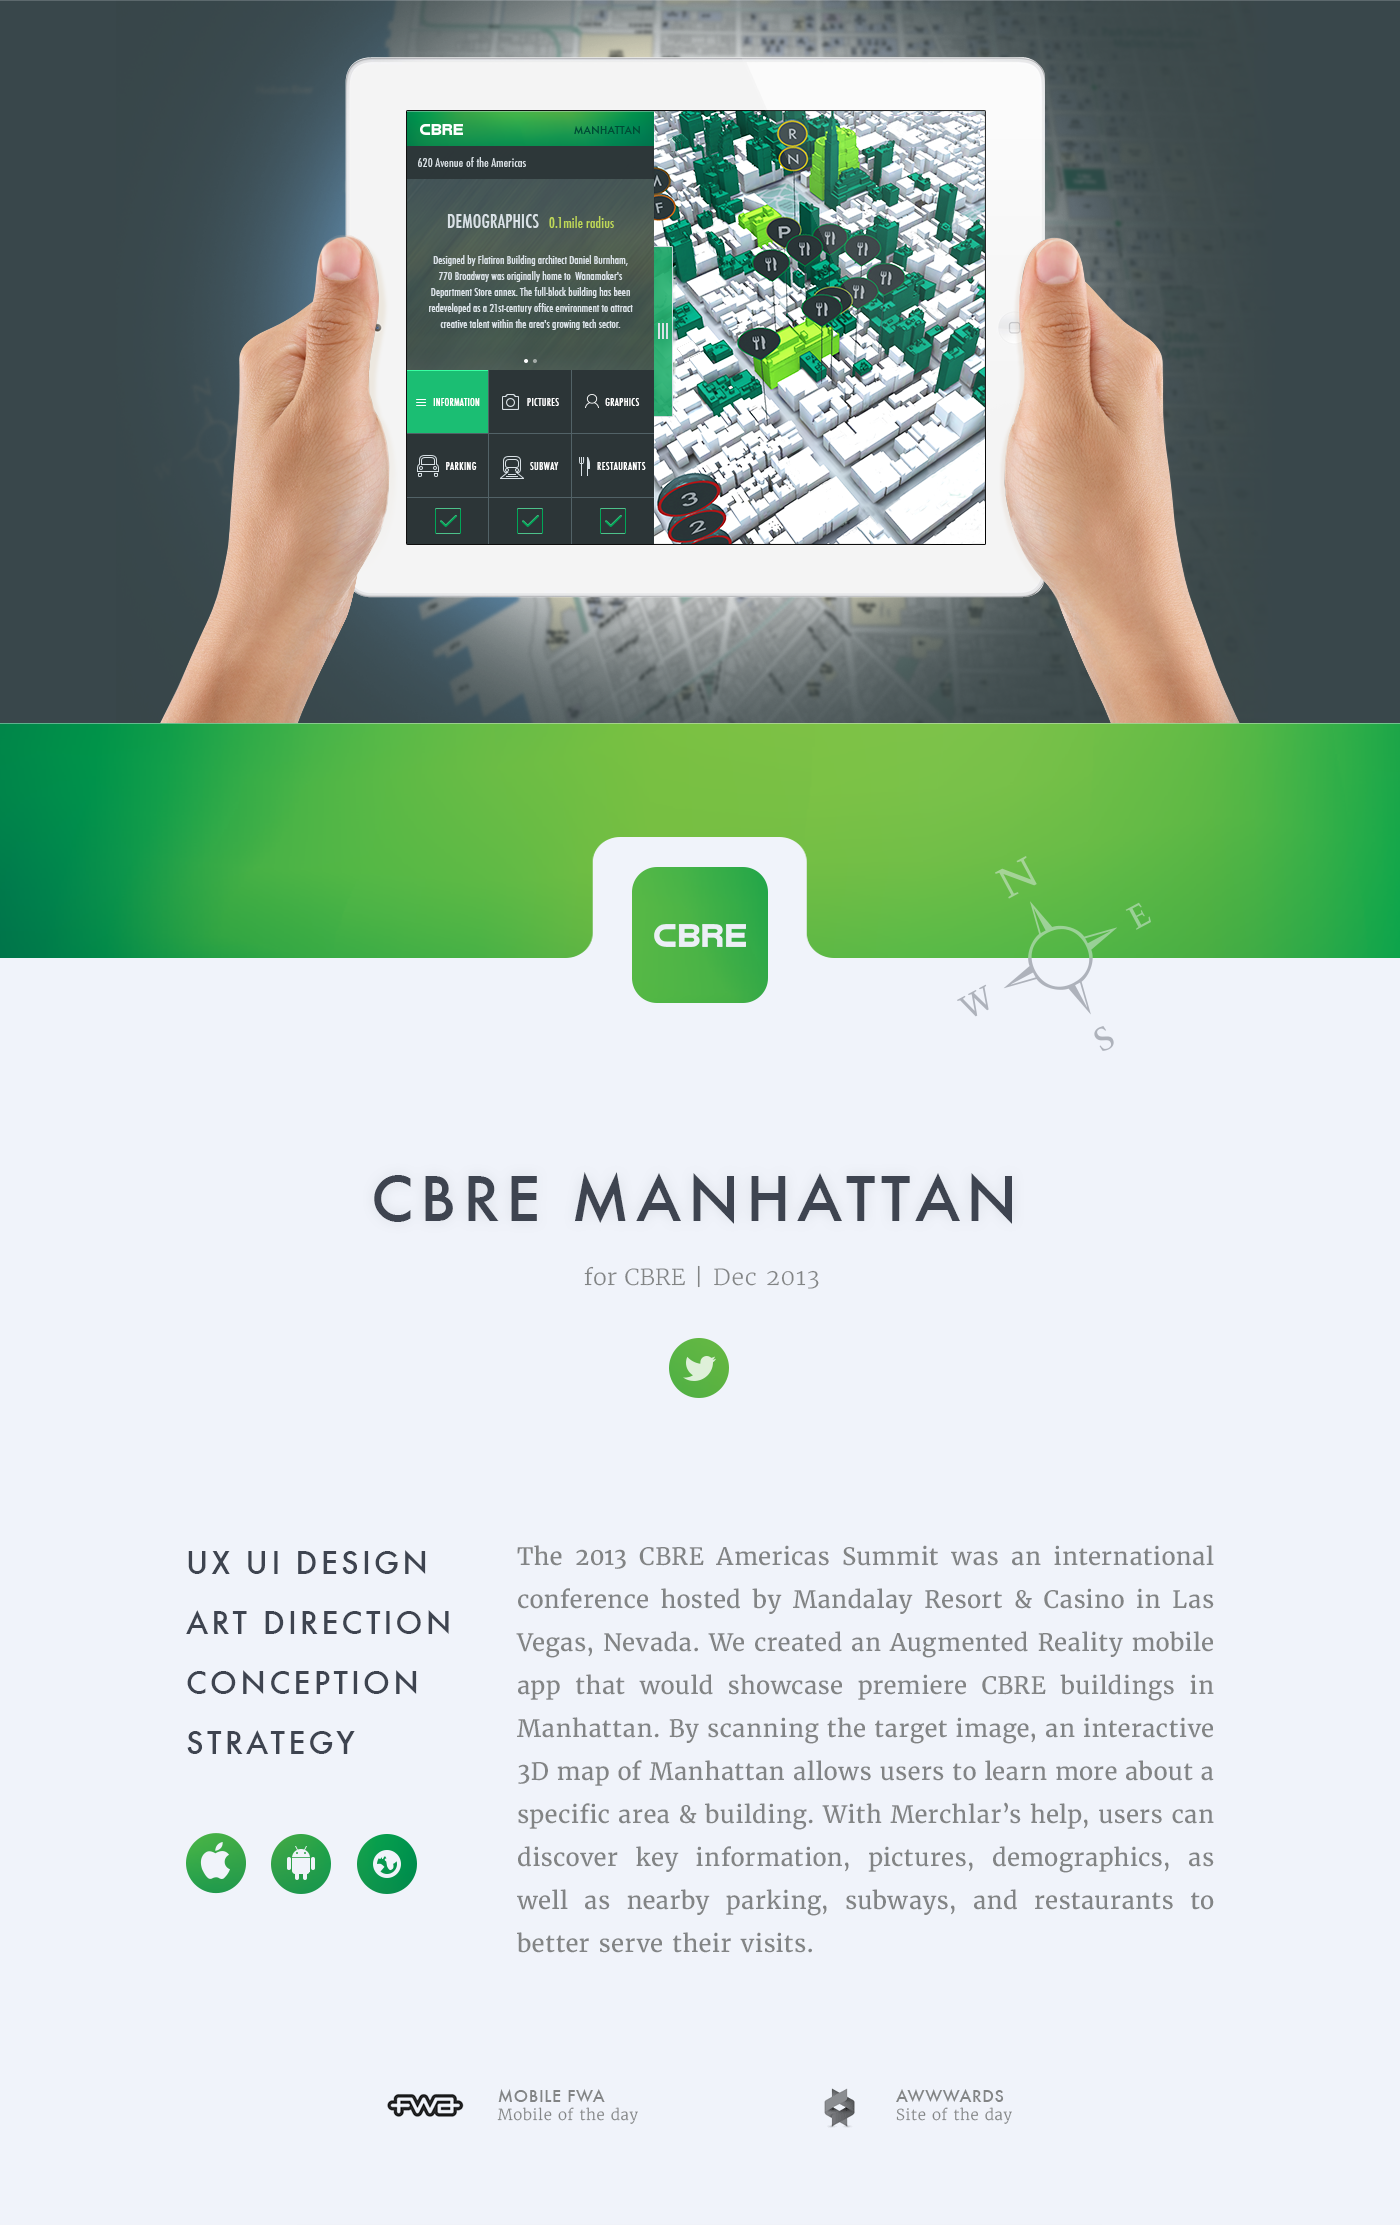 CBRE real estate iPad augmented reality Merchlar Manhattan building virtual product design 3D map Technology Mobile app New York